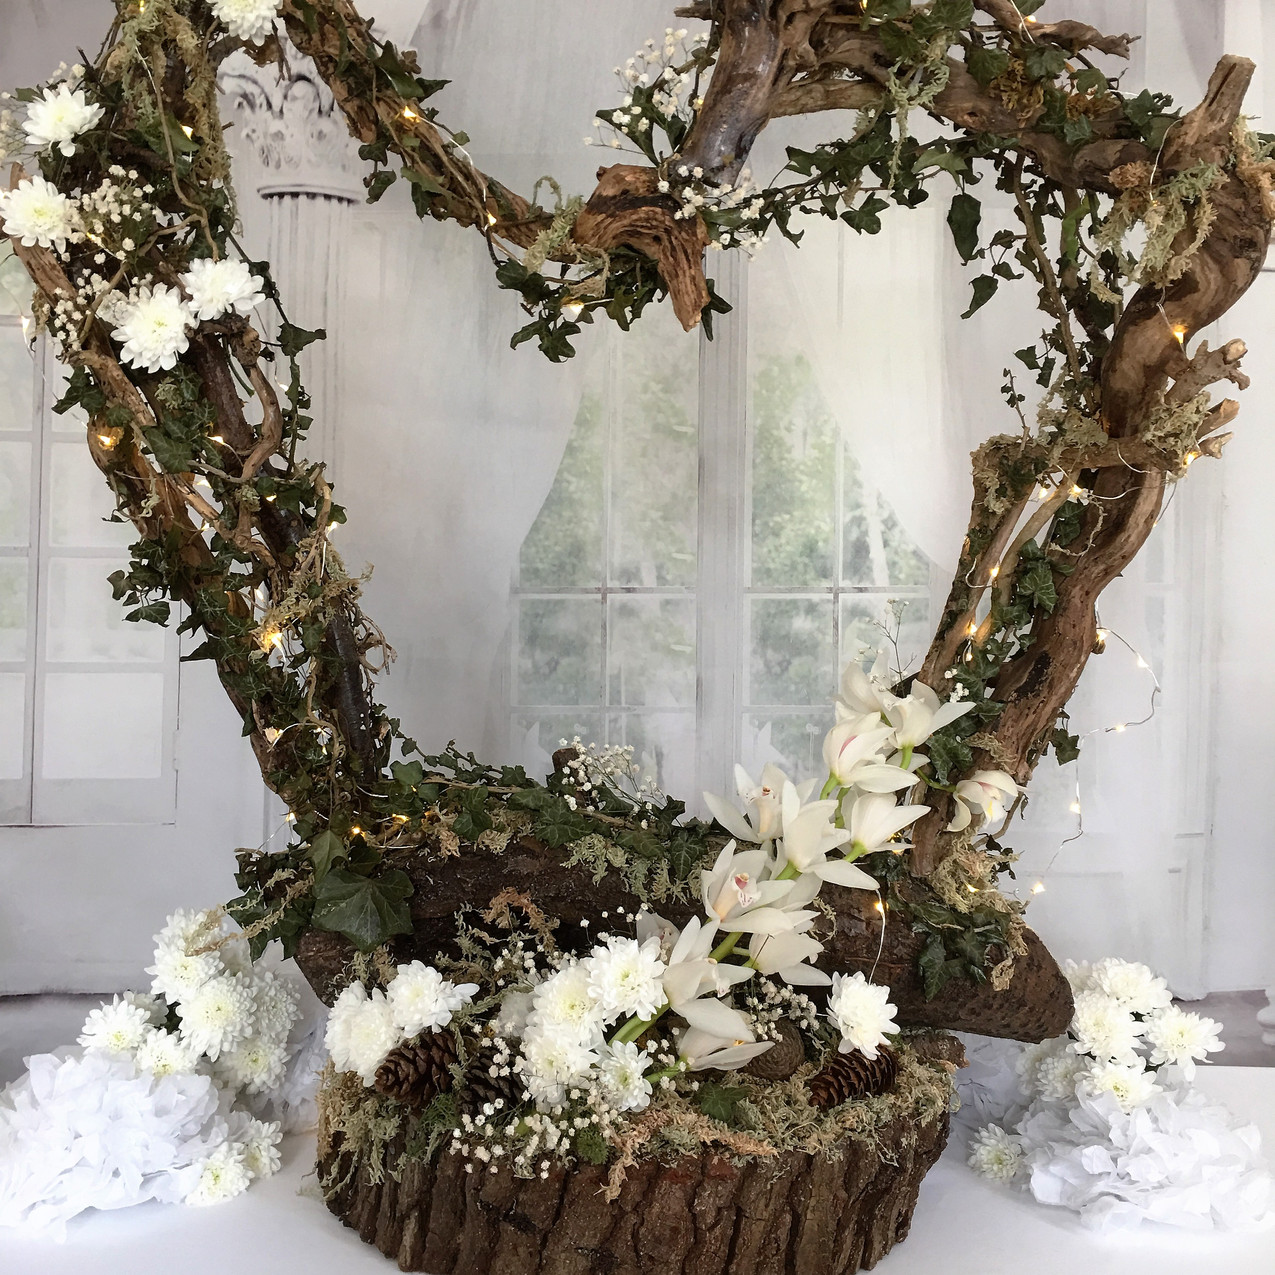 A STUNNING DISPLAY OVER 4 FT TALL . PERFECT TO COMPLIMENT TWO WOODS VENUE GIVING THAT BEAUTIFUL RUSTIC WEDDING